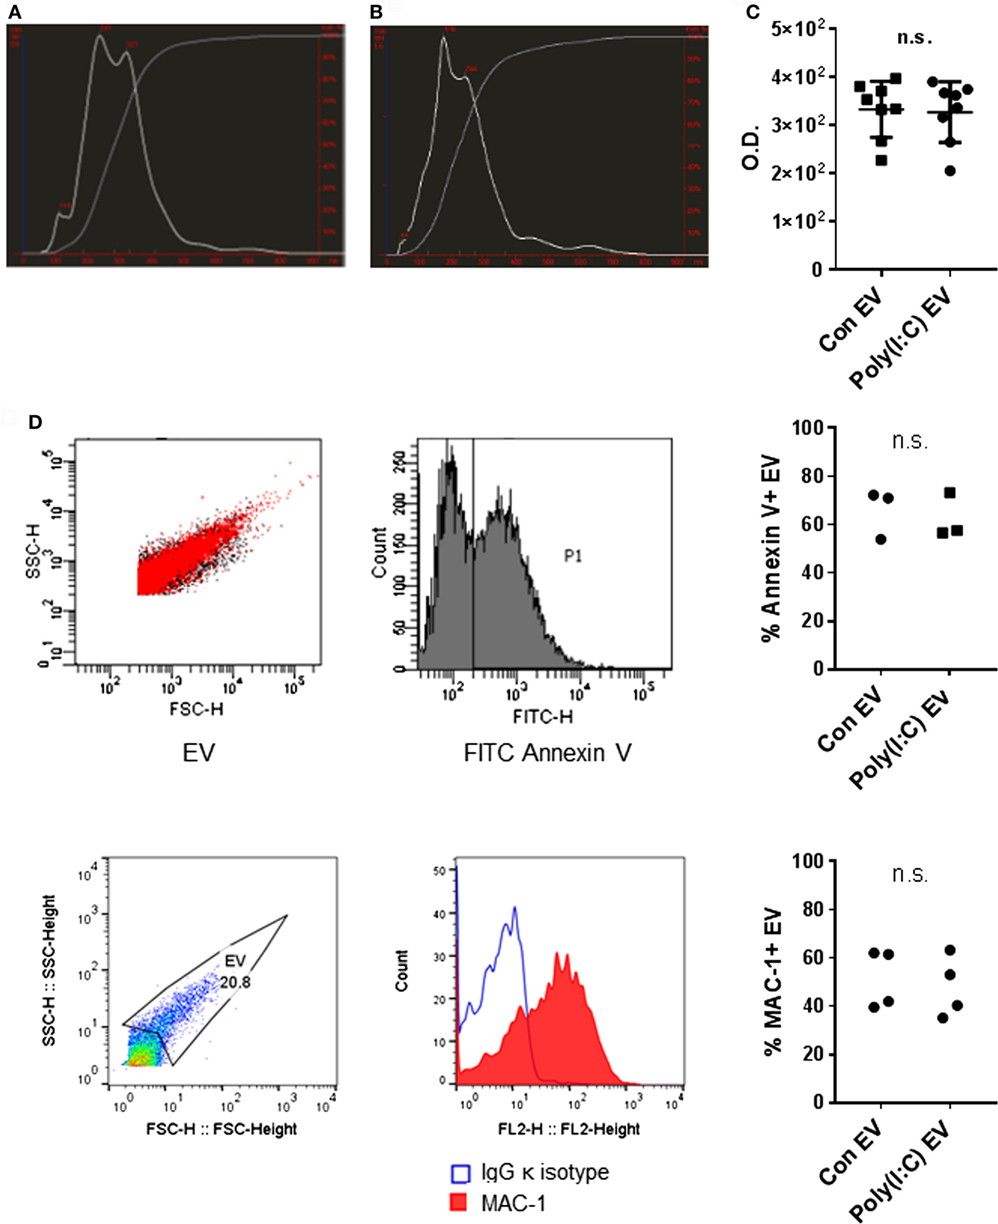 Frontiers | TLR3 Ligand Poly(I:C) Exerts Distinct Actions in